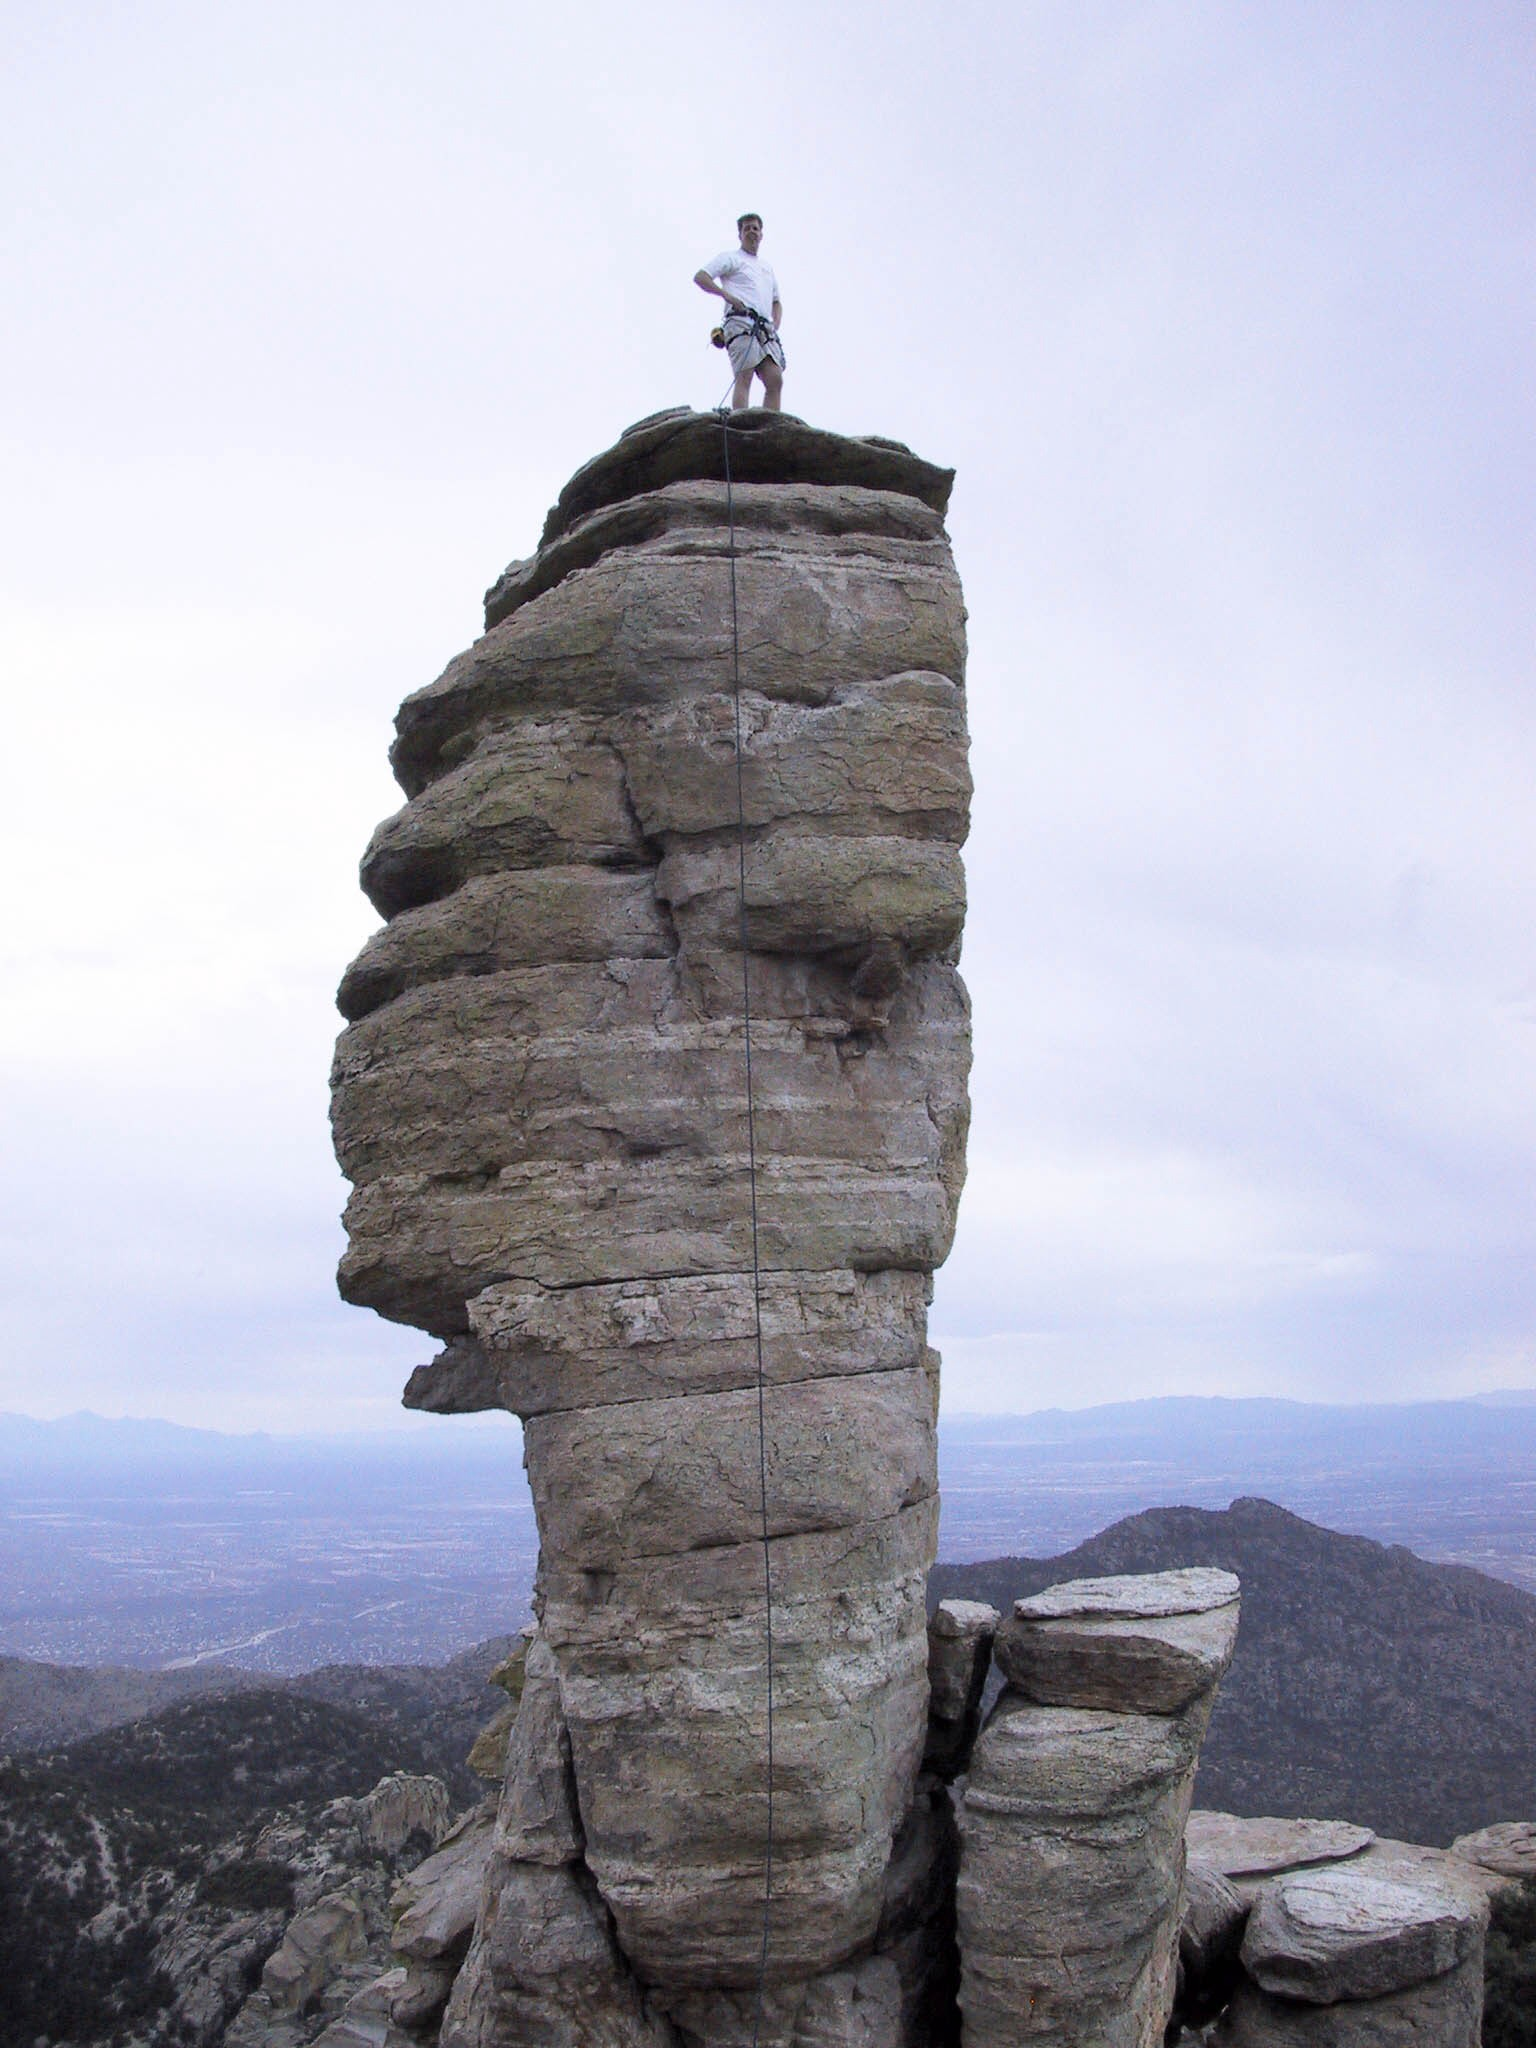 Glory days. Hitchcock Pinnacle, Mt Lemmon. Super easy but awesome views.